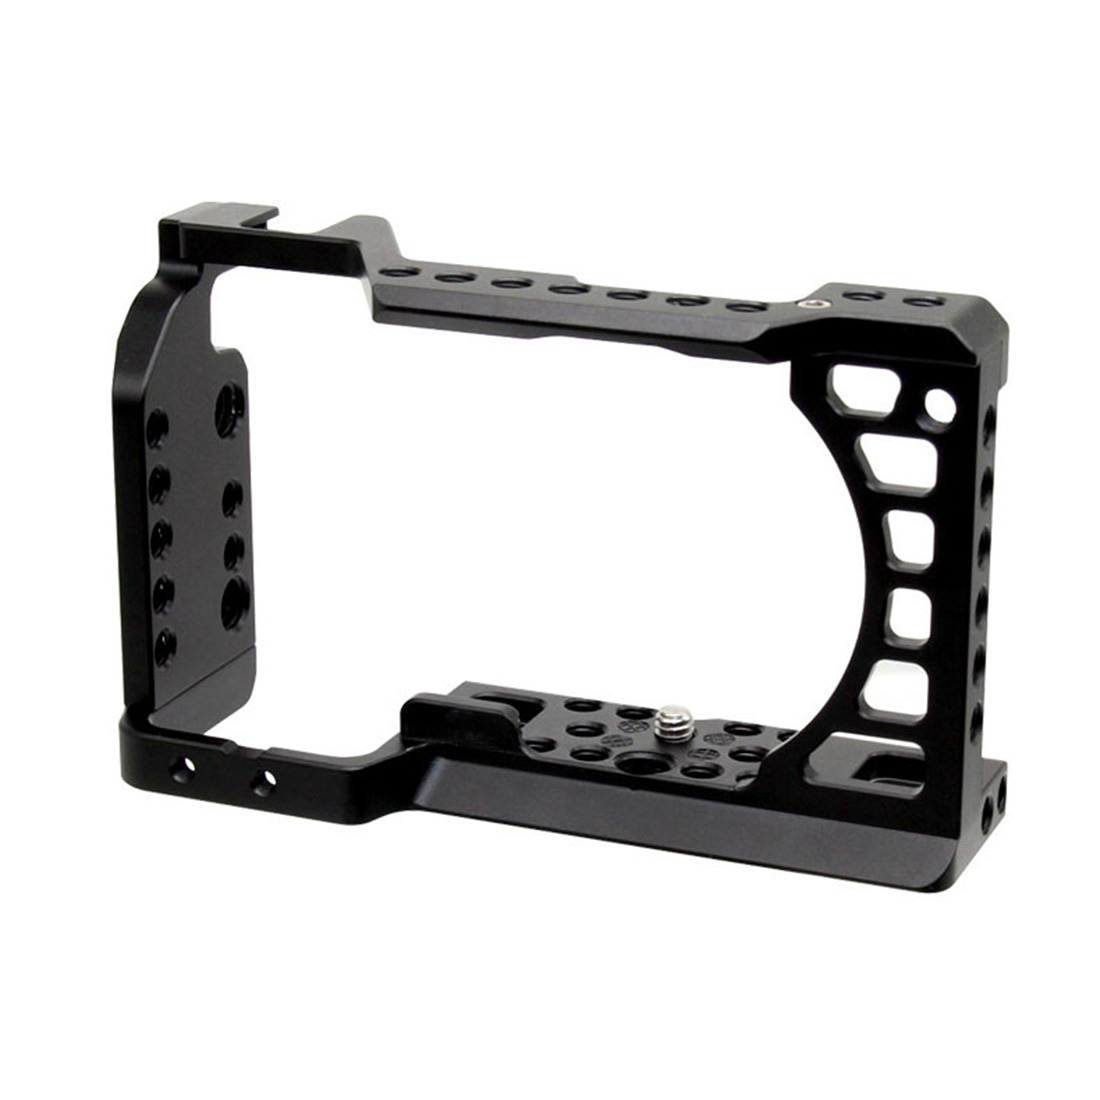 Camera Cage Video Film Movie Making Stabilizer With 1/4